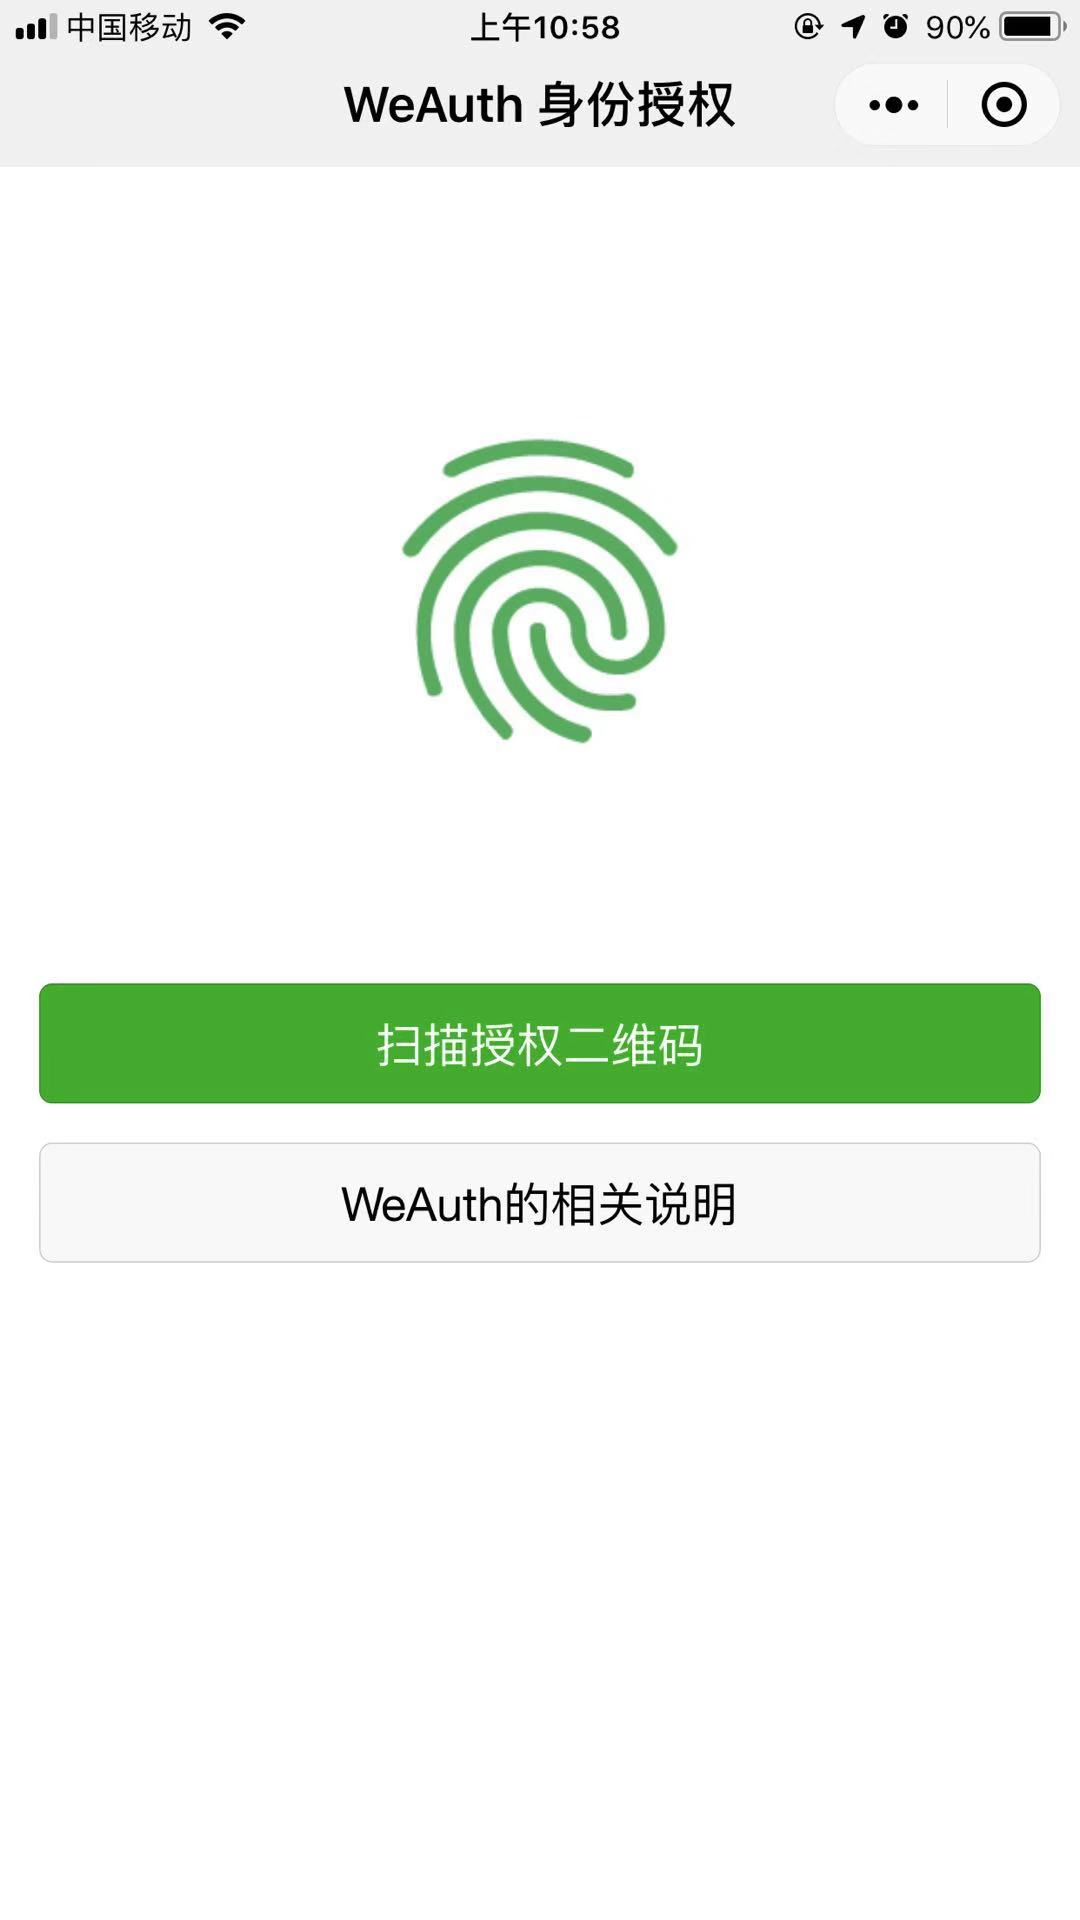 WeAuth